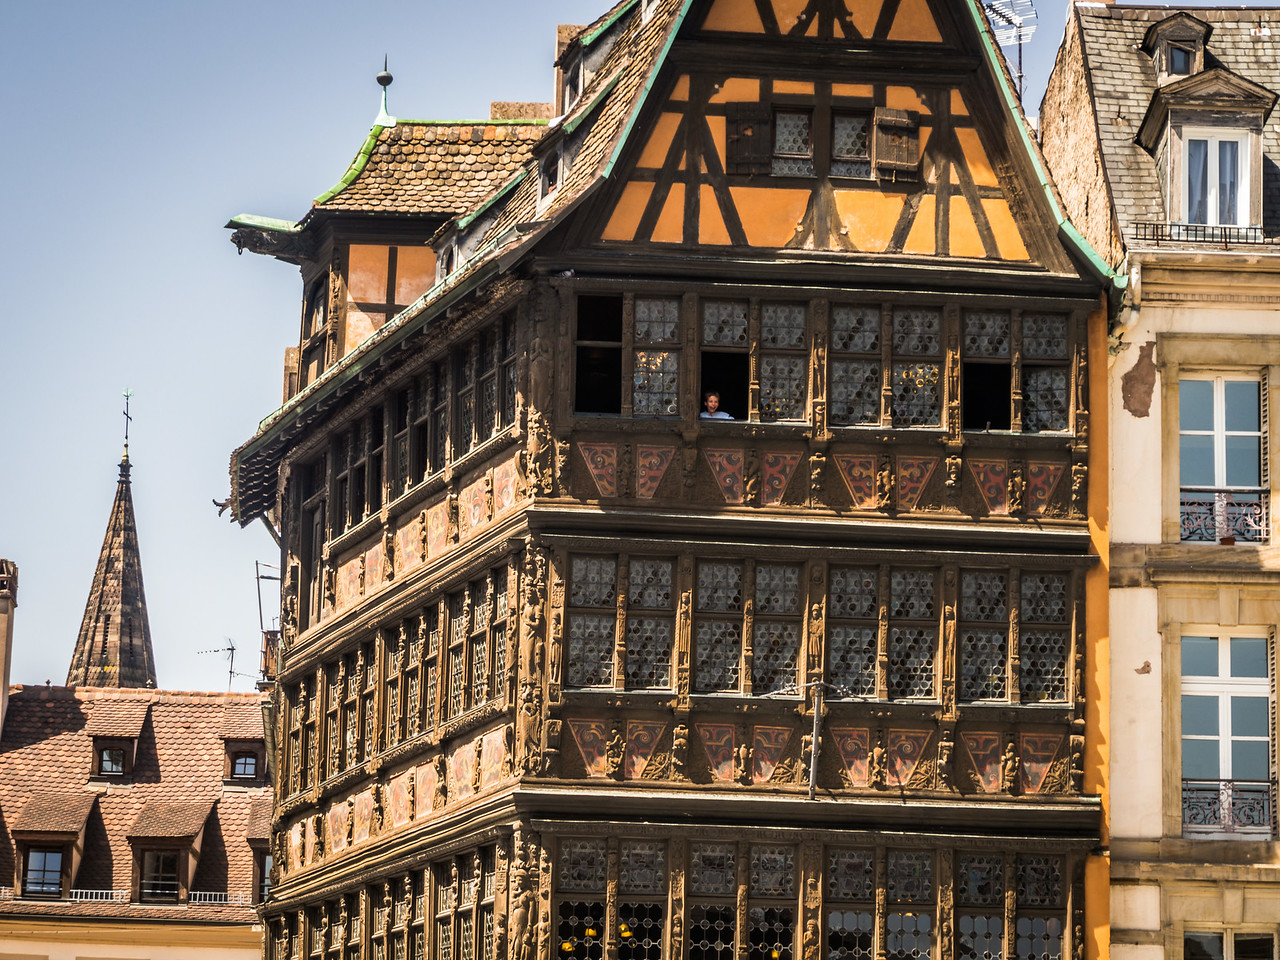 Old Half-Timbered House, Strasbourg, France